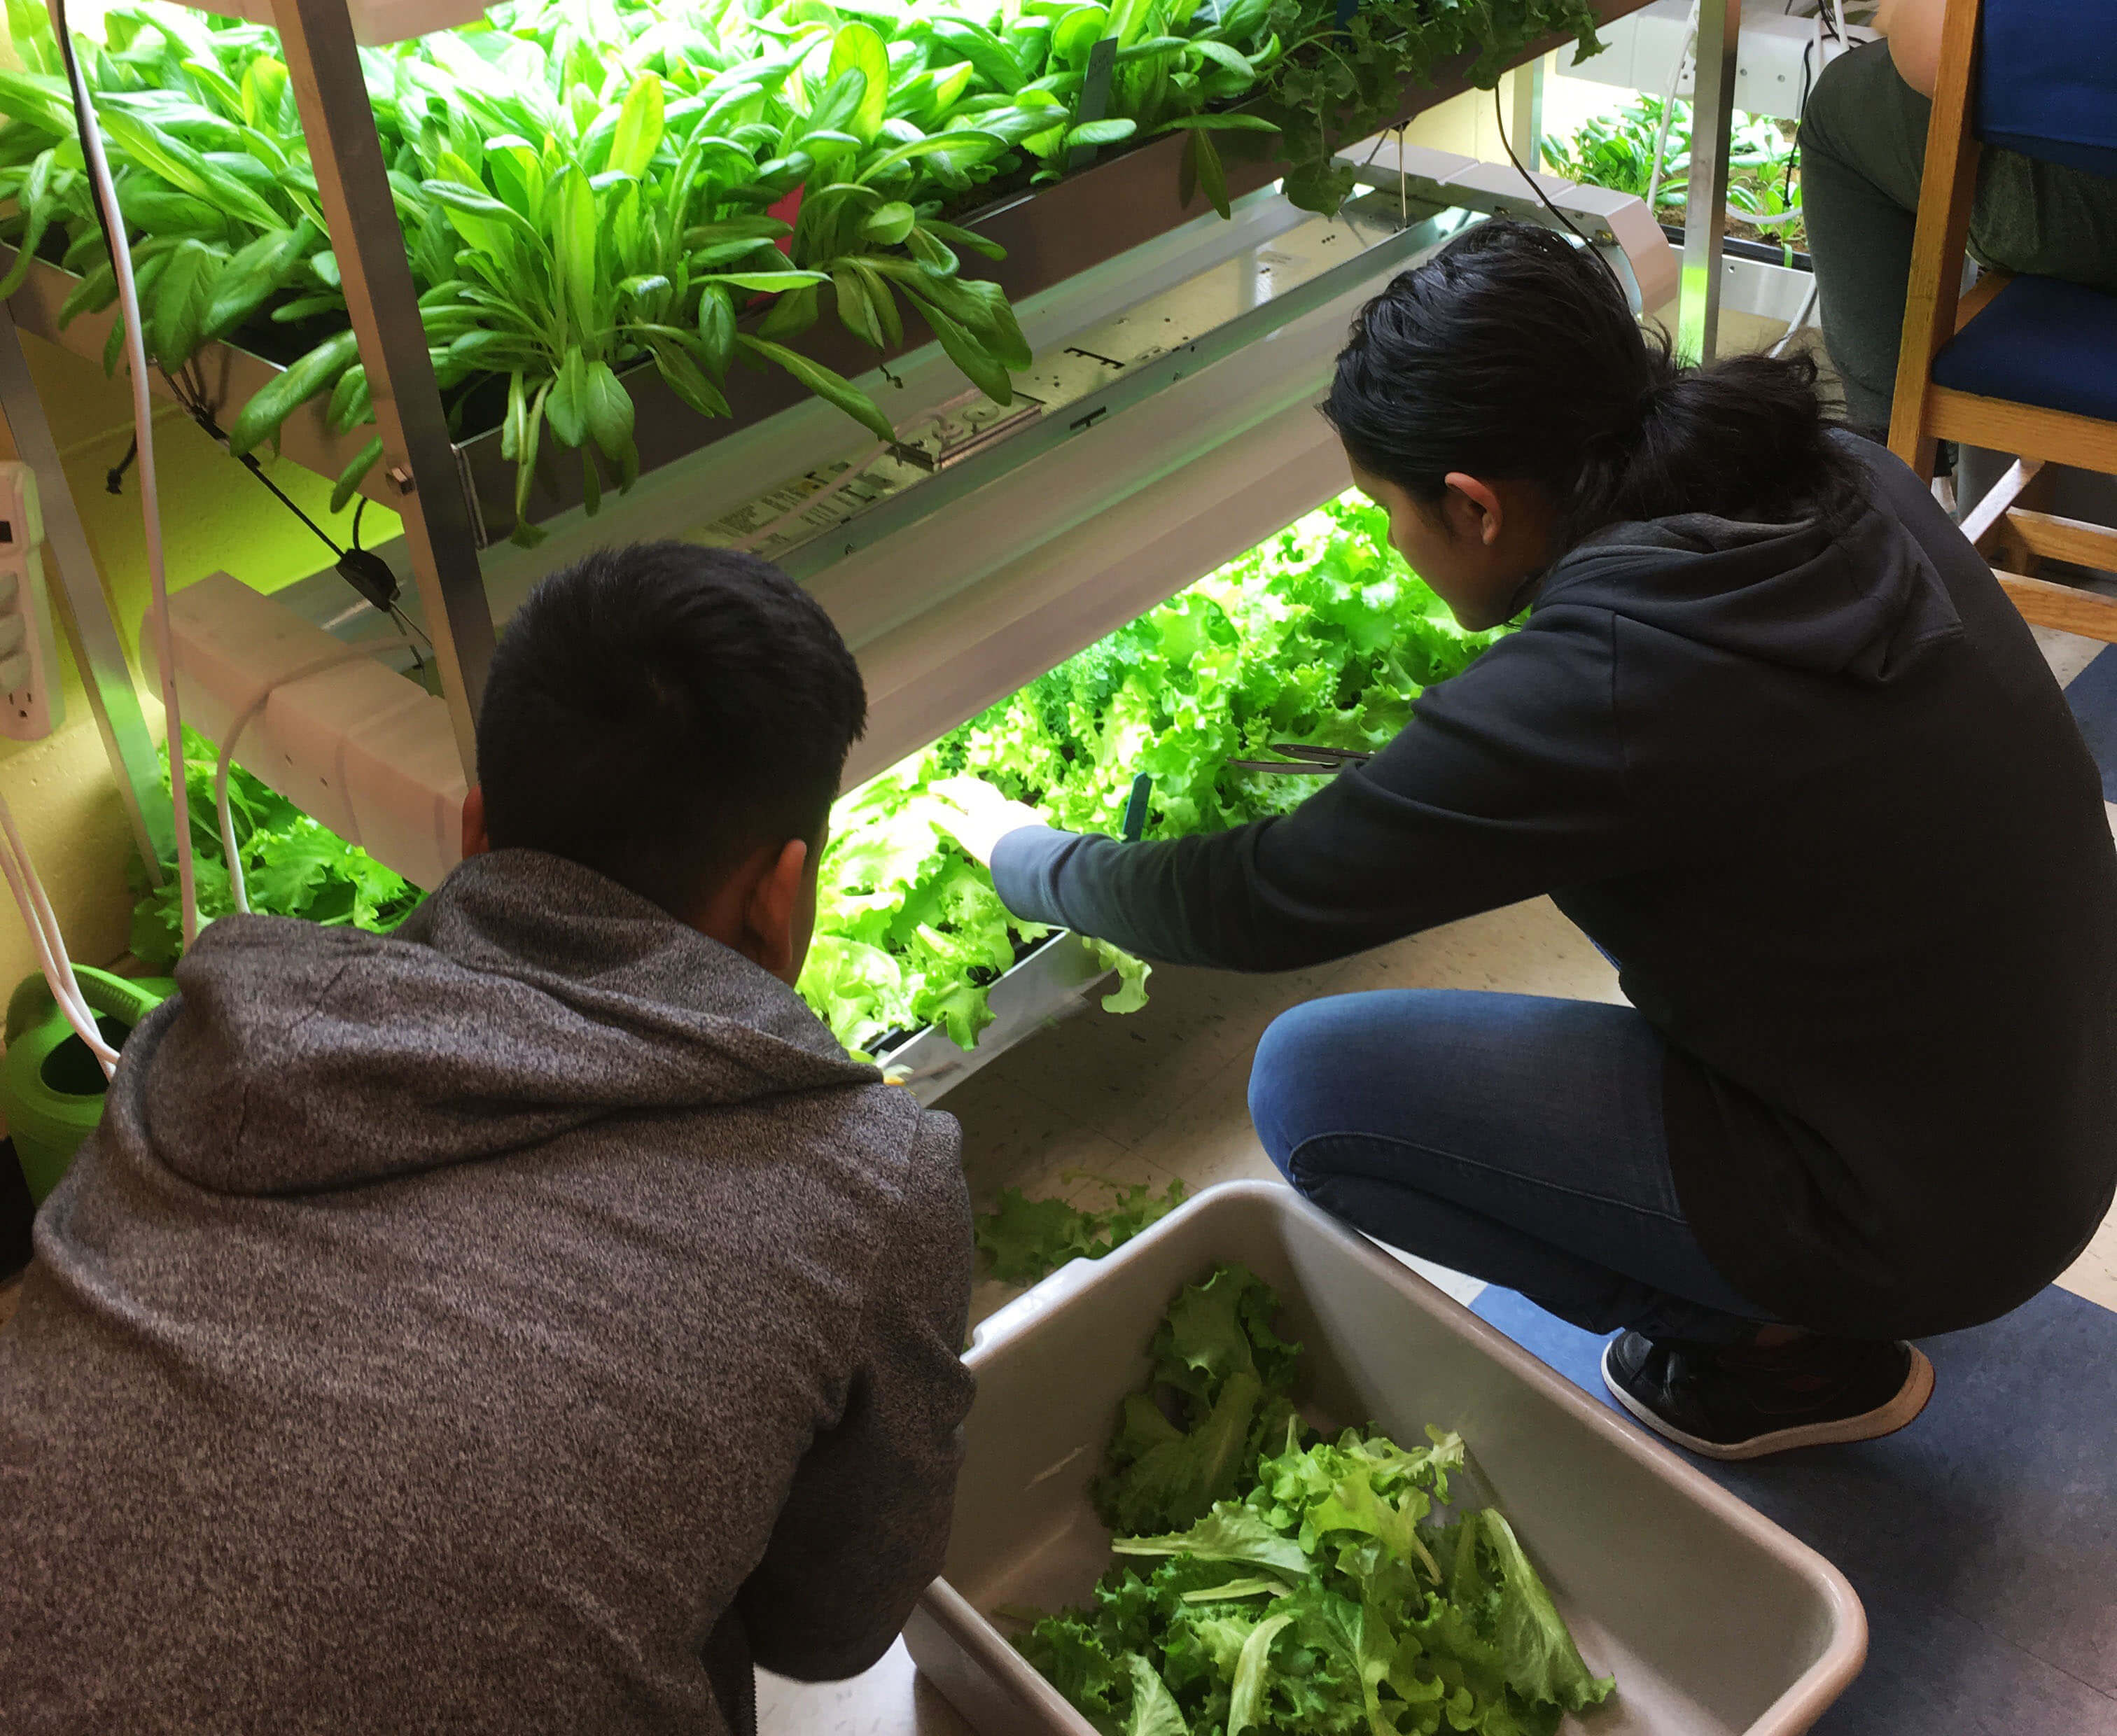 PRESS RELEASE: William J. Dean Technical High School Partners with EvanLEE Organics to Grow Organic Greens and Produce